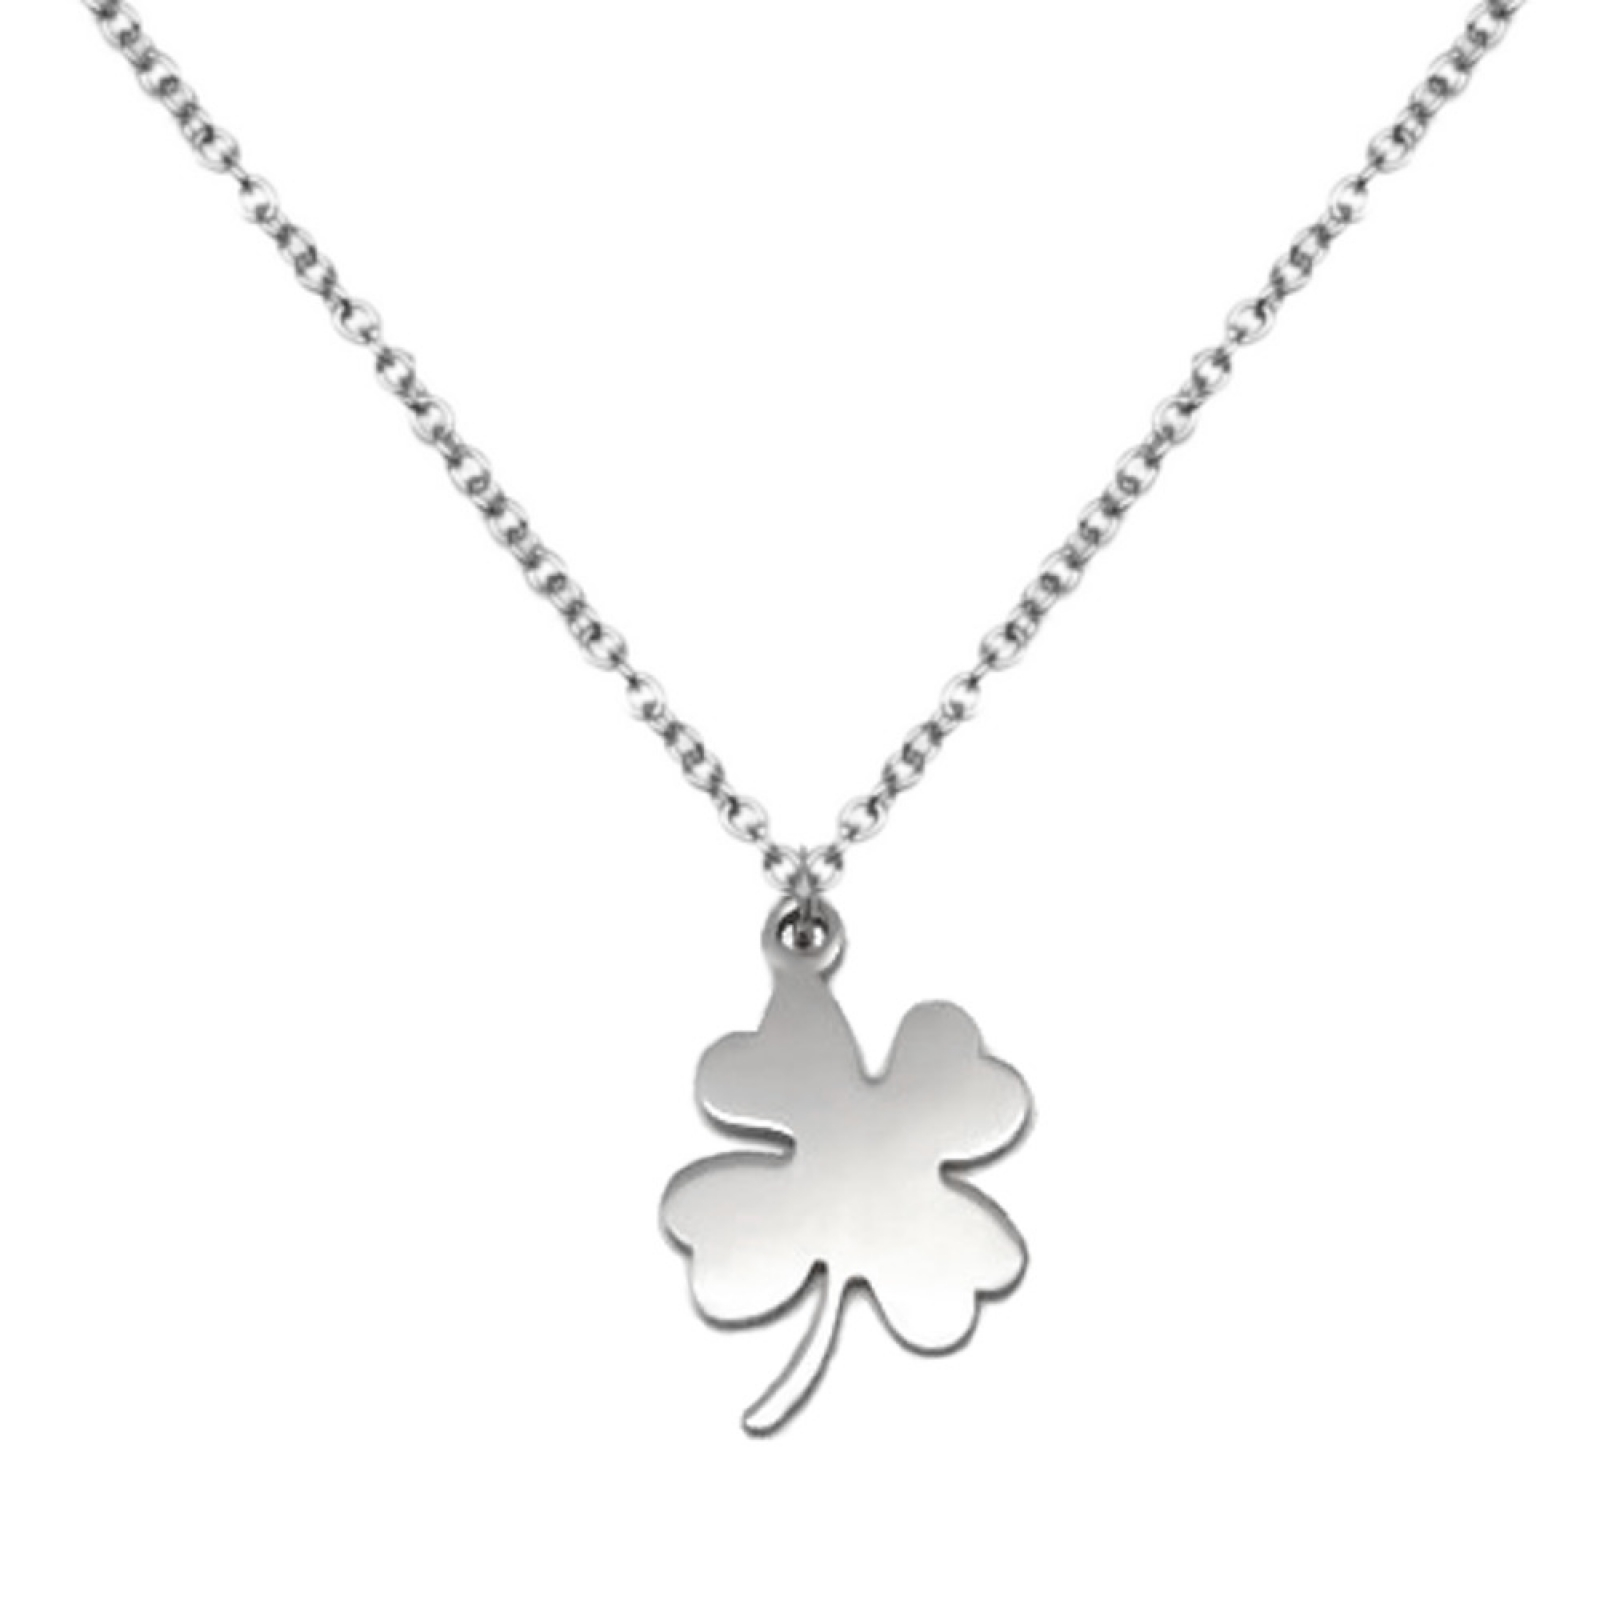 silver diamond sterling clover necklace childs four image leaf small jewellery pendant neckwear